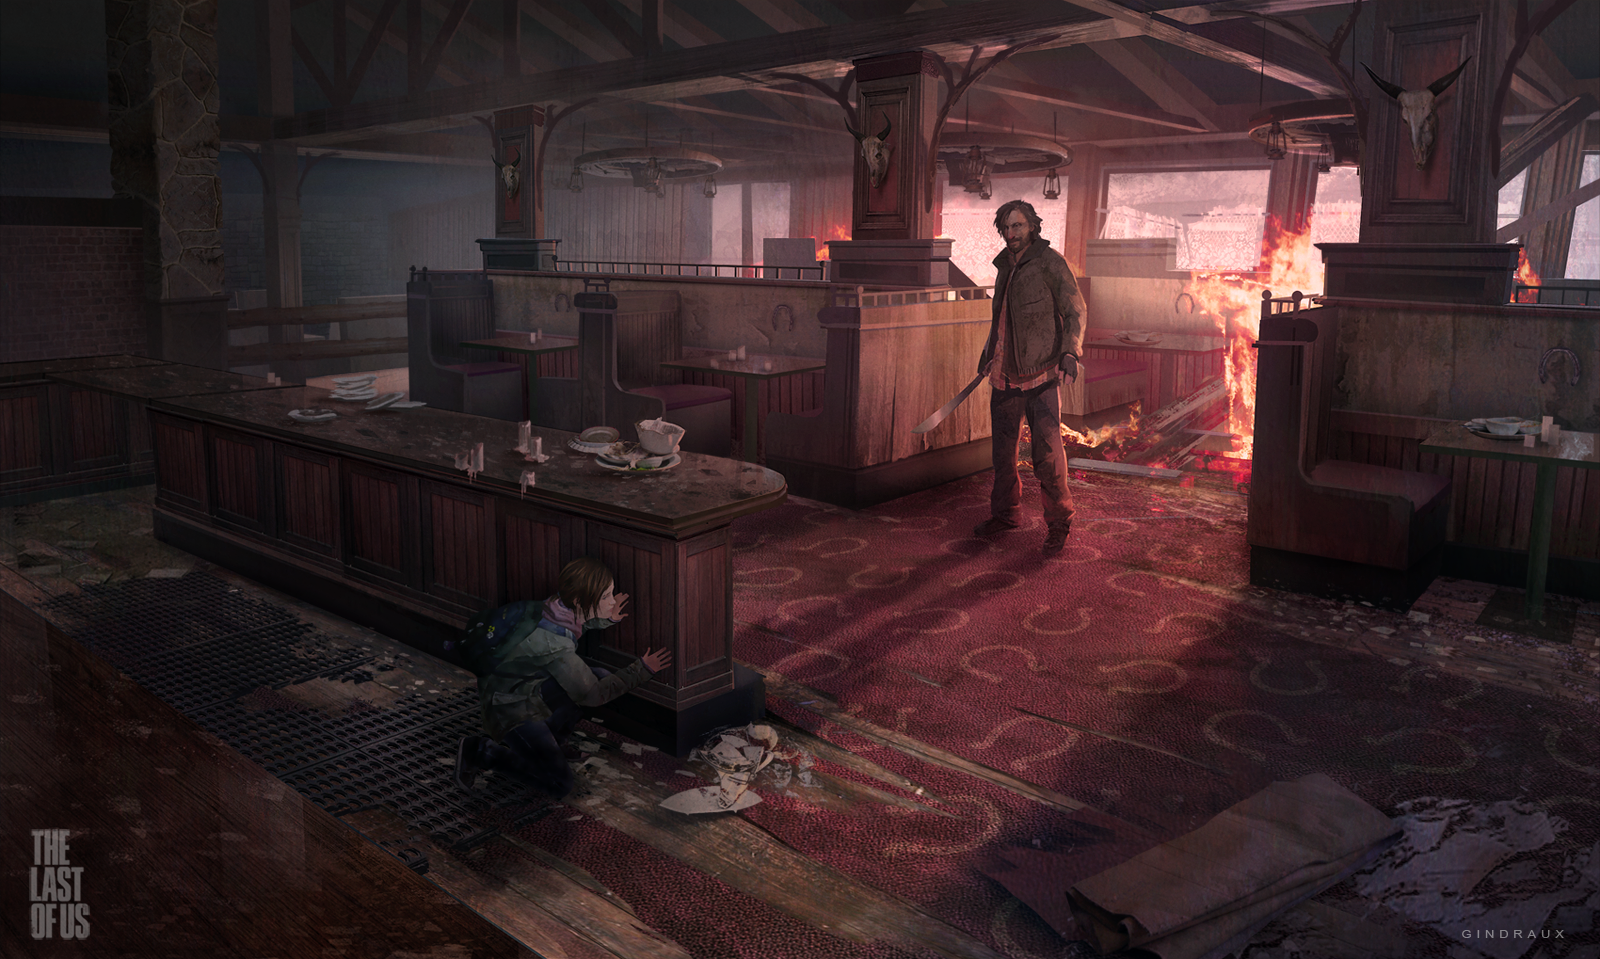 Astonishing Personal Artwork from Naughty Dog Concept